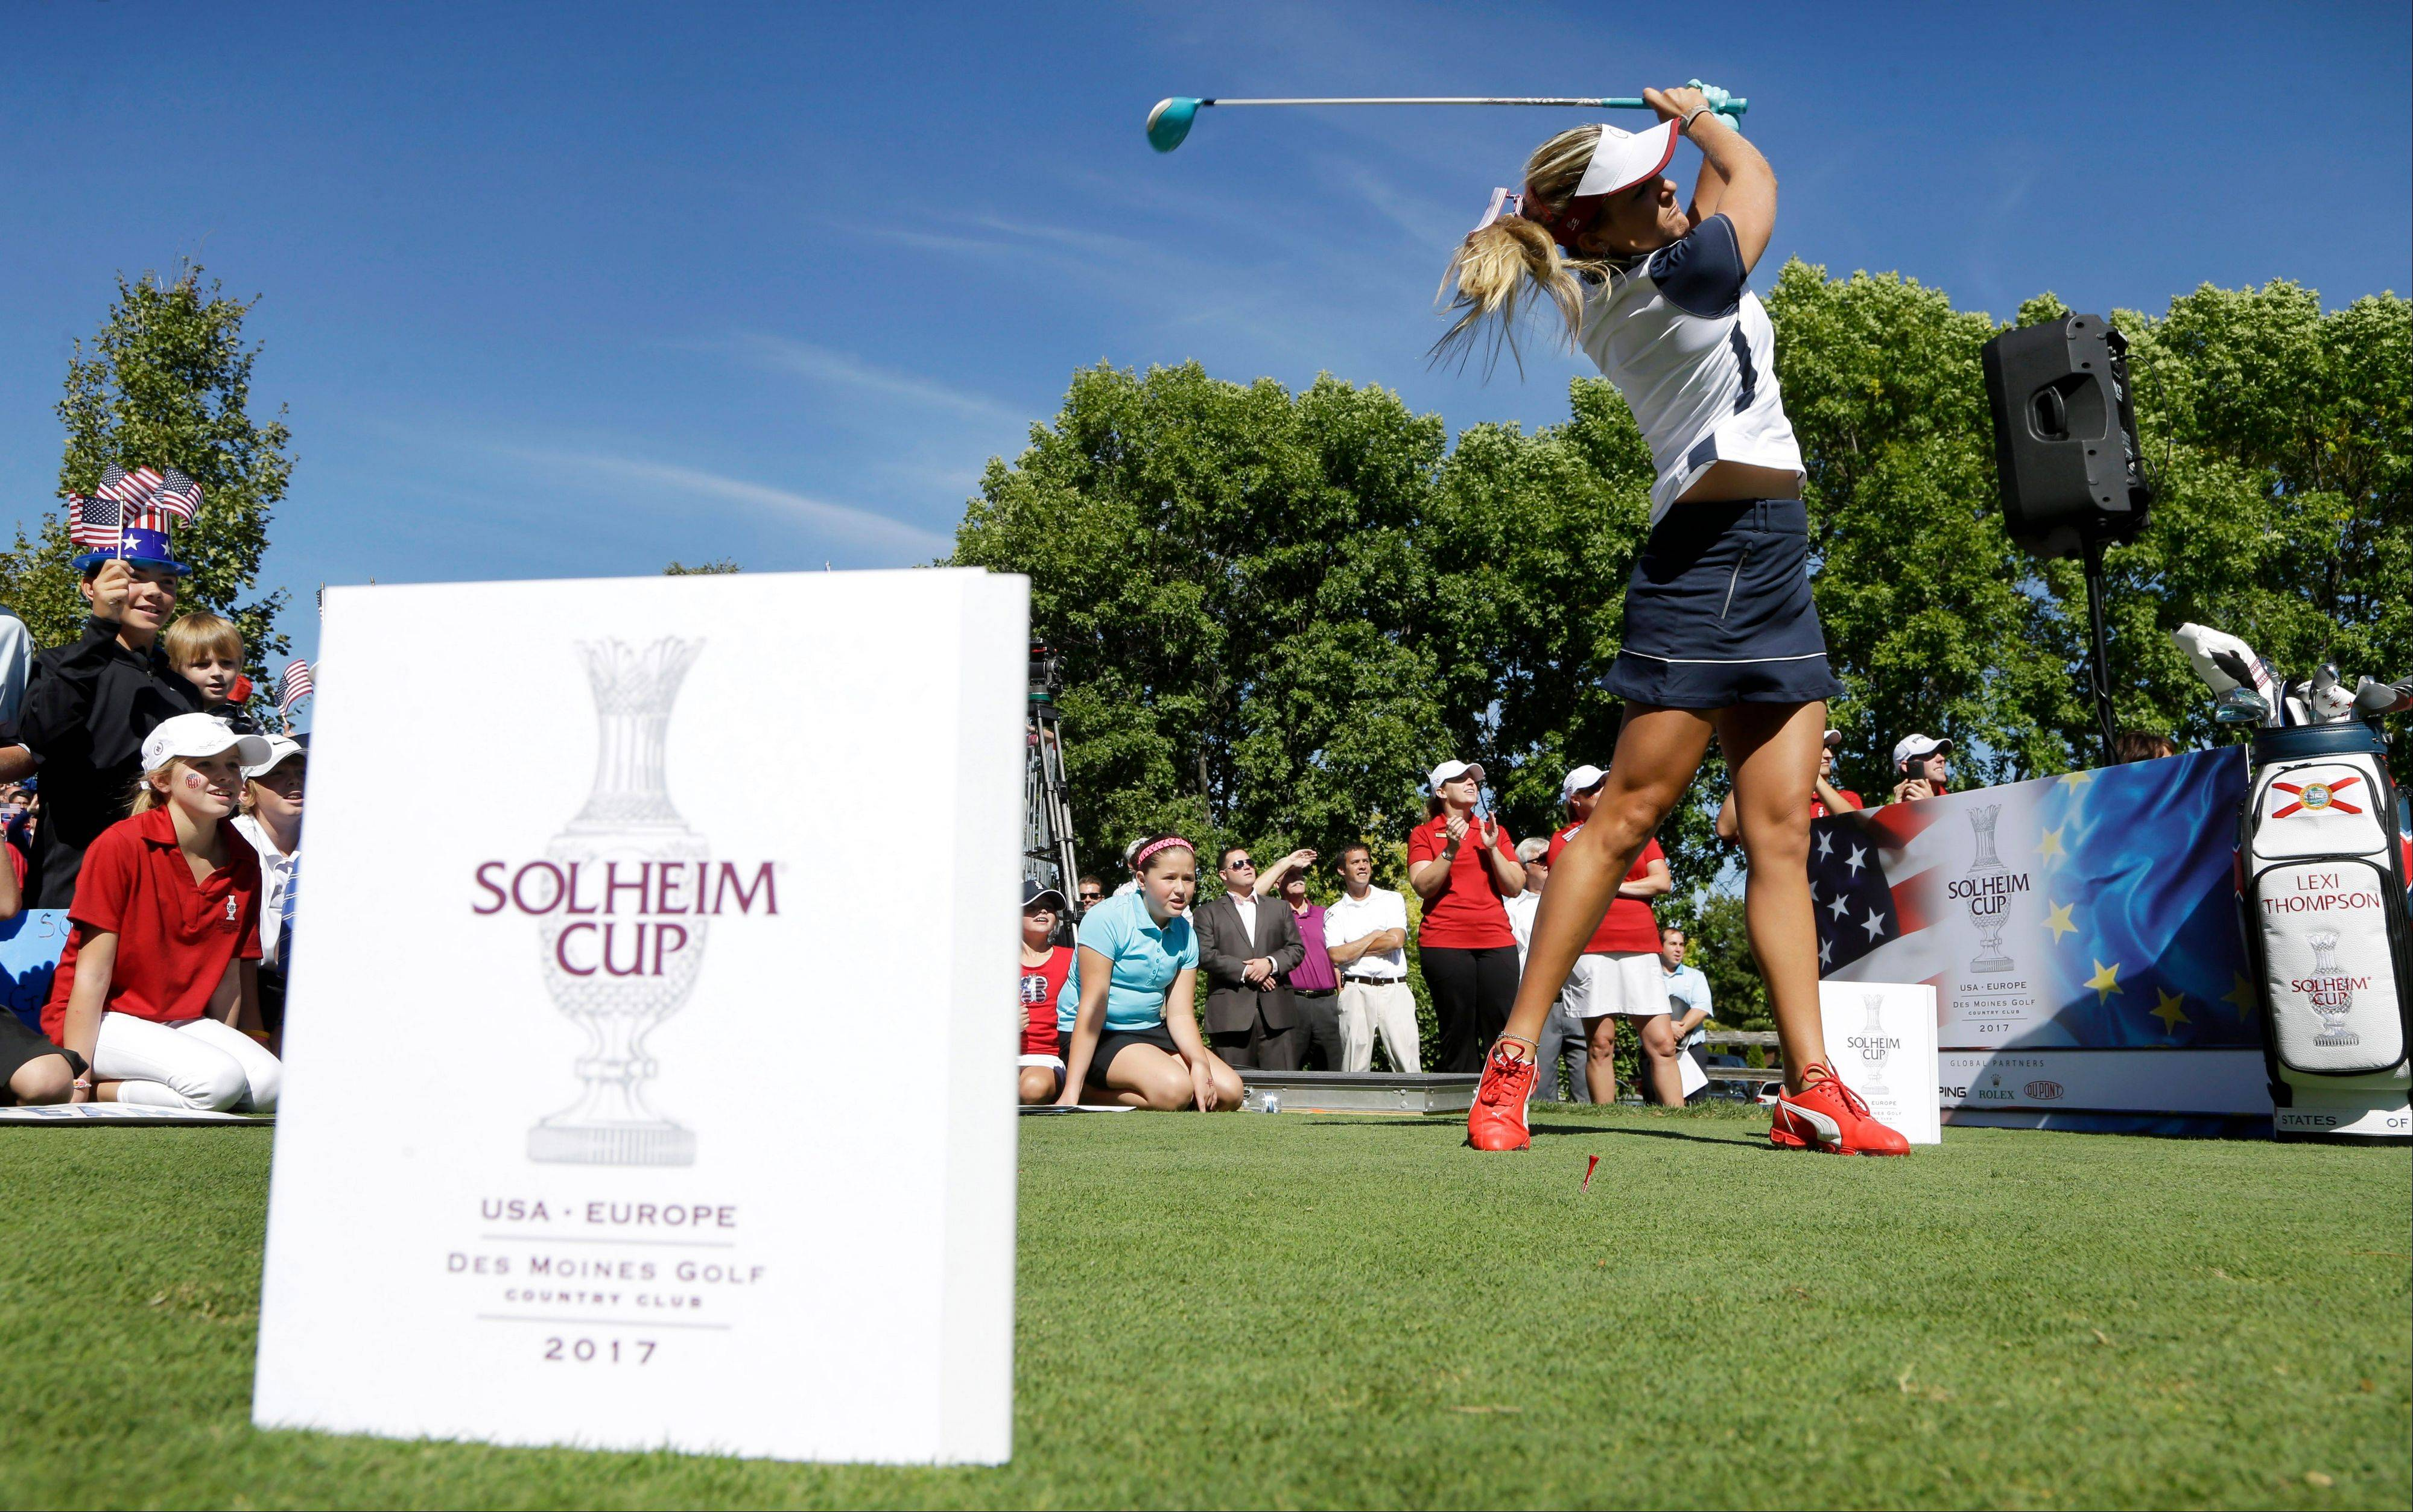 LPGA golfer Lexi Thompson hits a ball off a tee Monday following an announcement that the Solheim Cup will be held at the Des Moines Golf and Country Club in 2017.